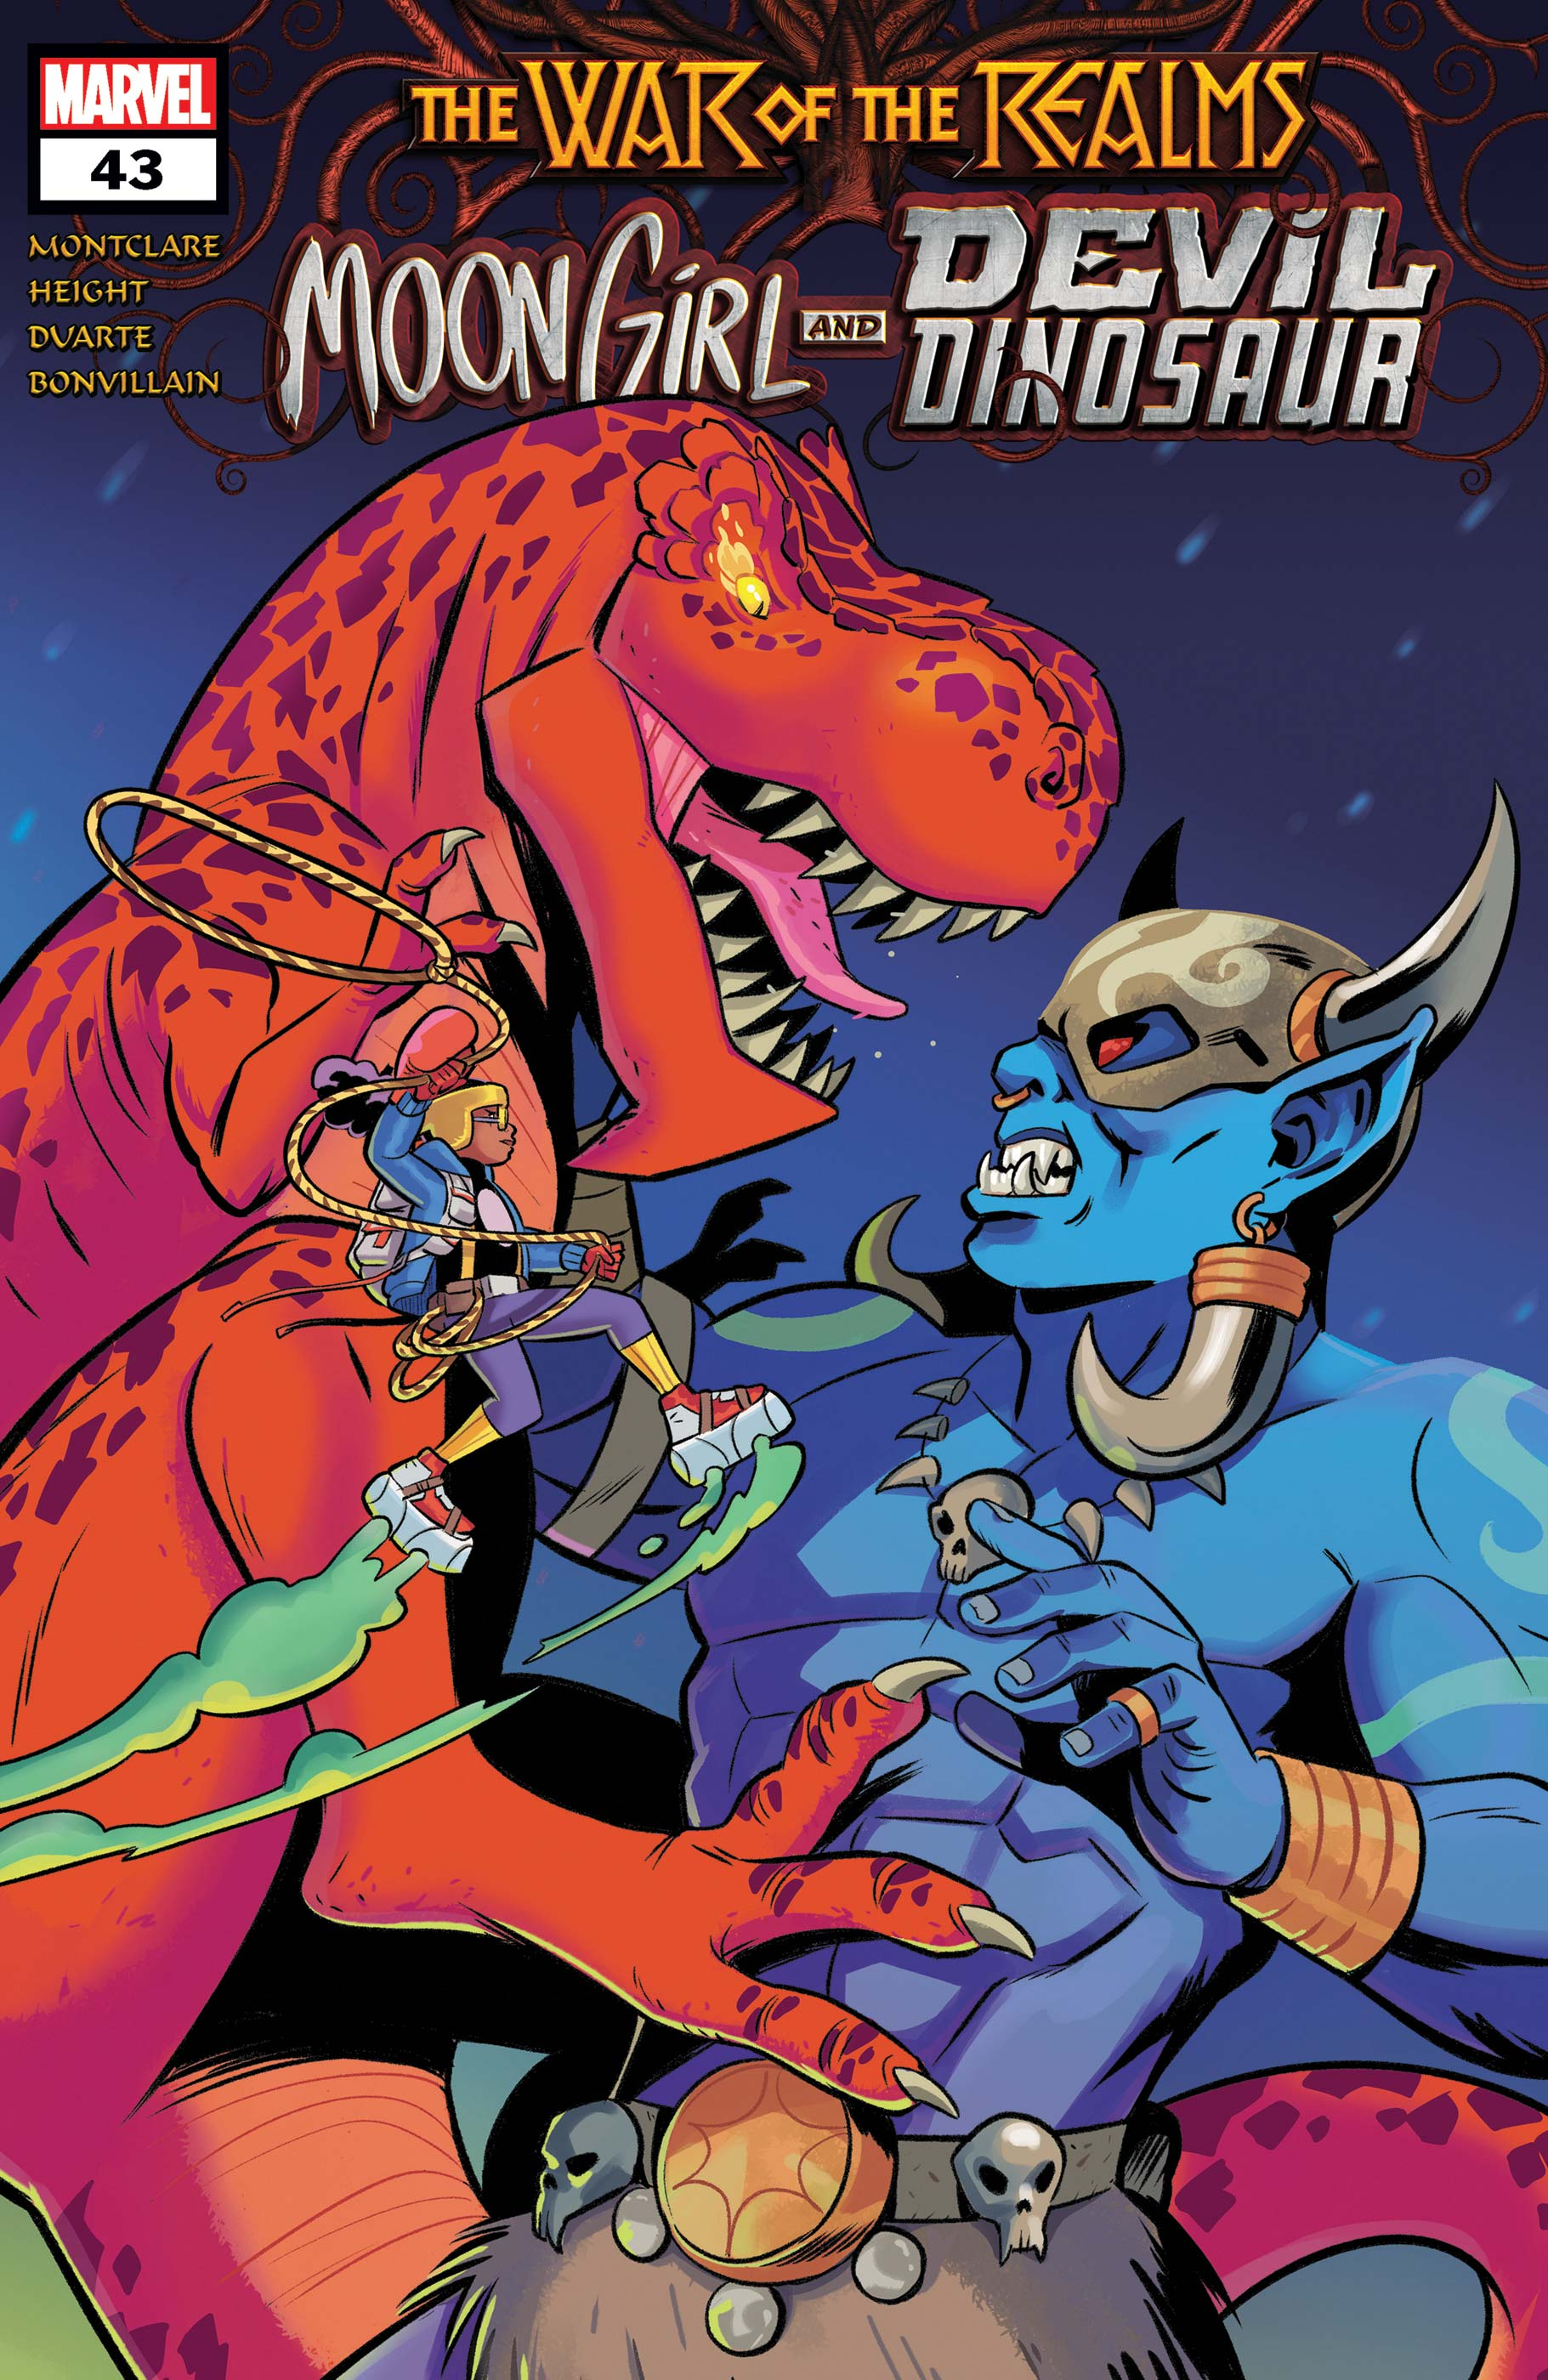 Moon Girl and Devil Dinosaur (2015) #43